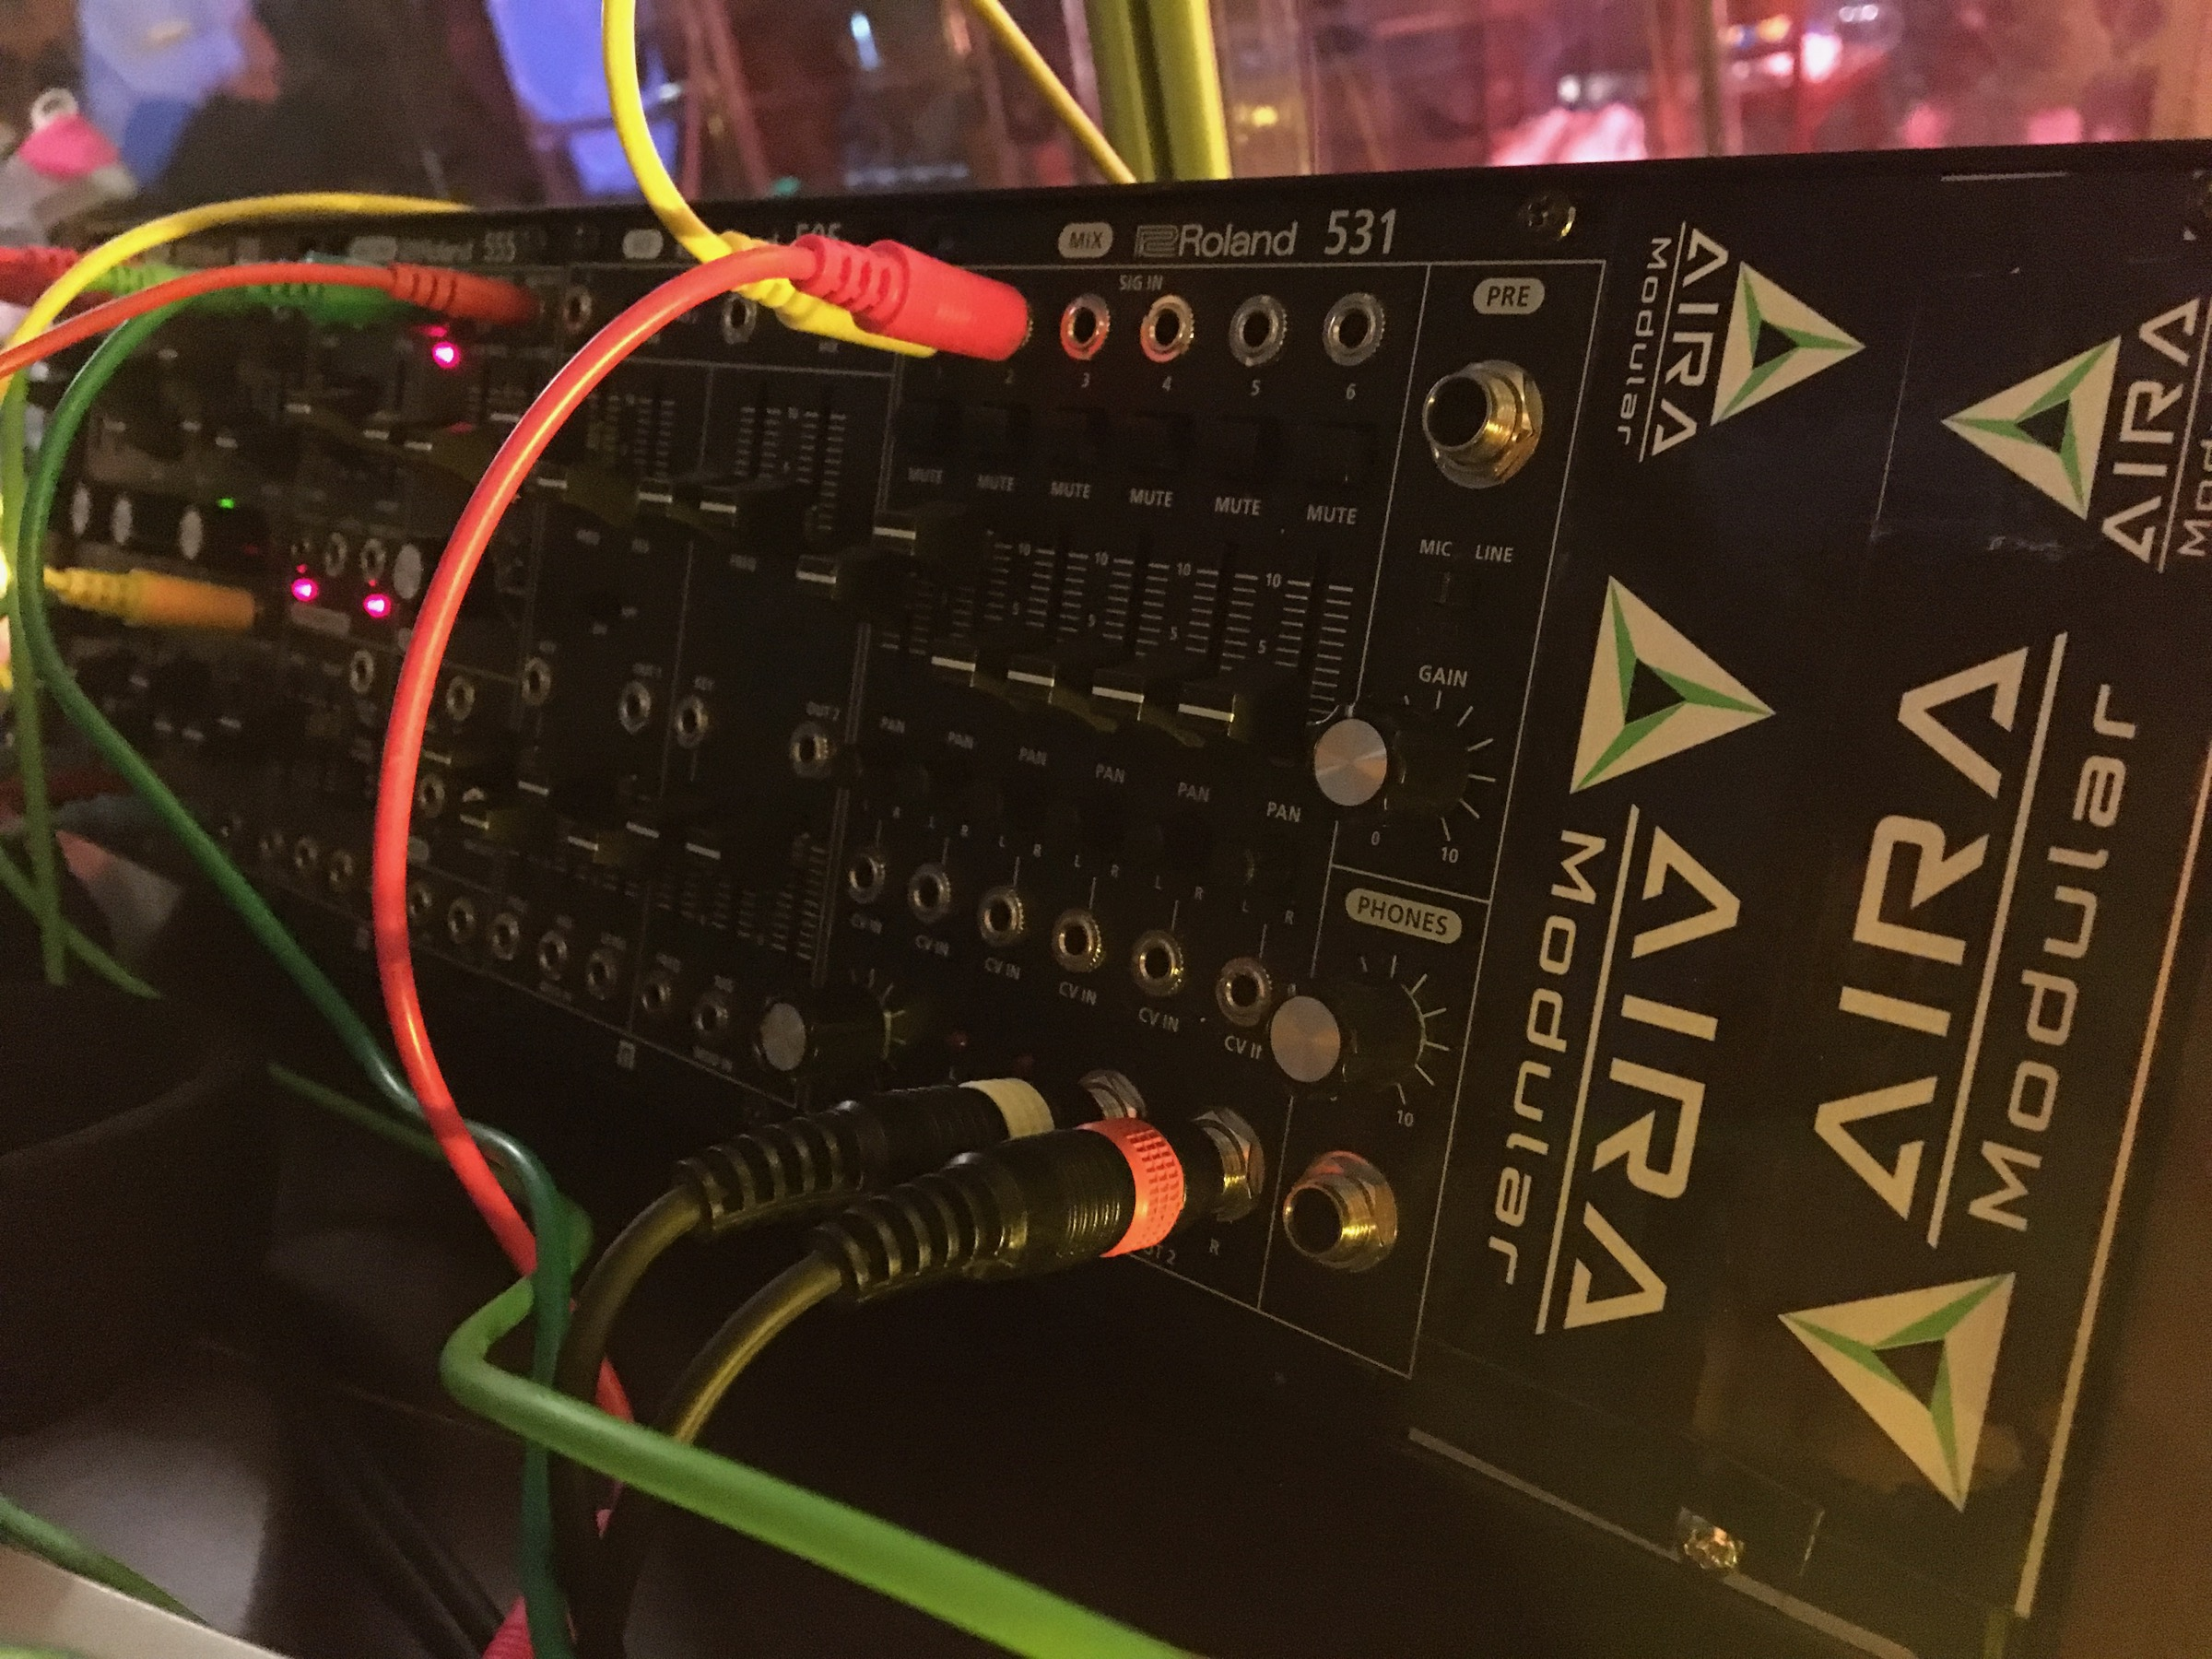 New Roland System 500 Analog Eurorack Modules Spotted In